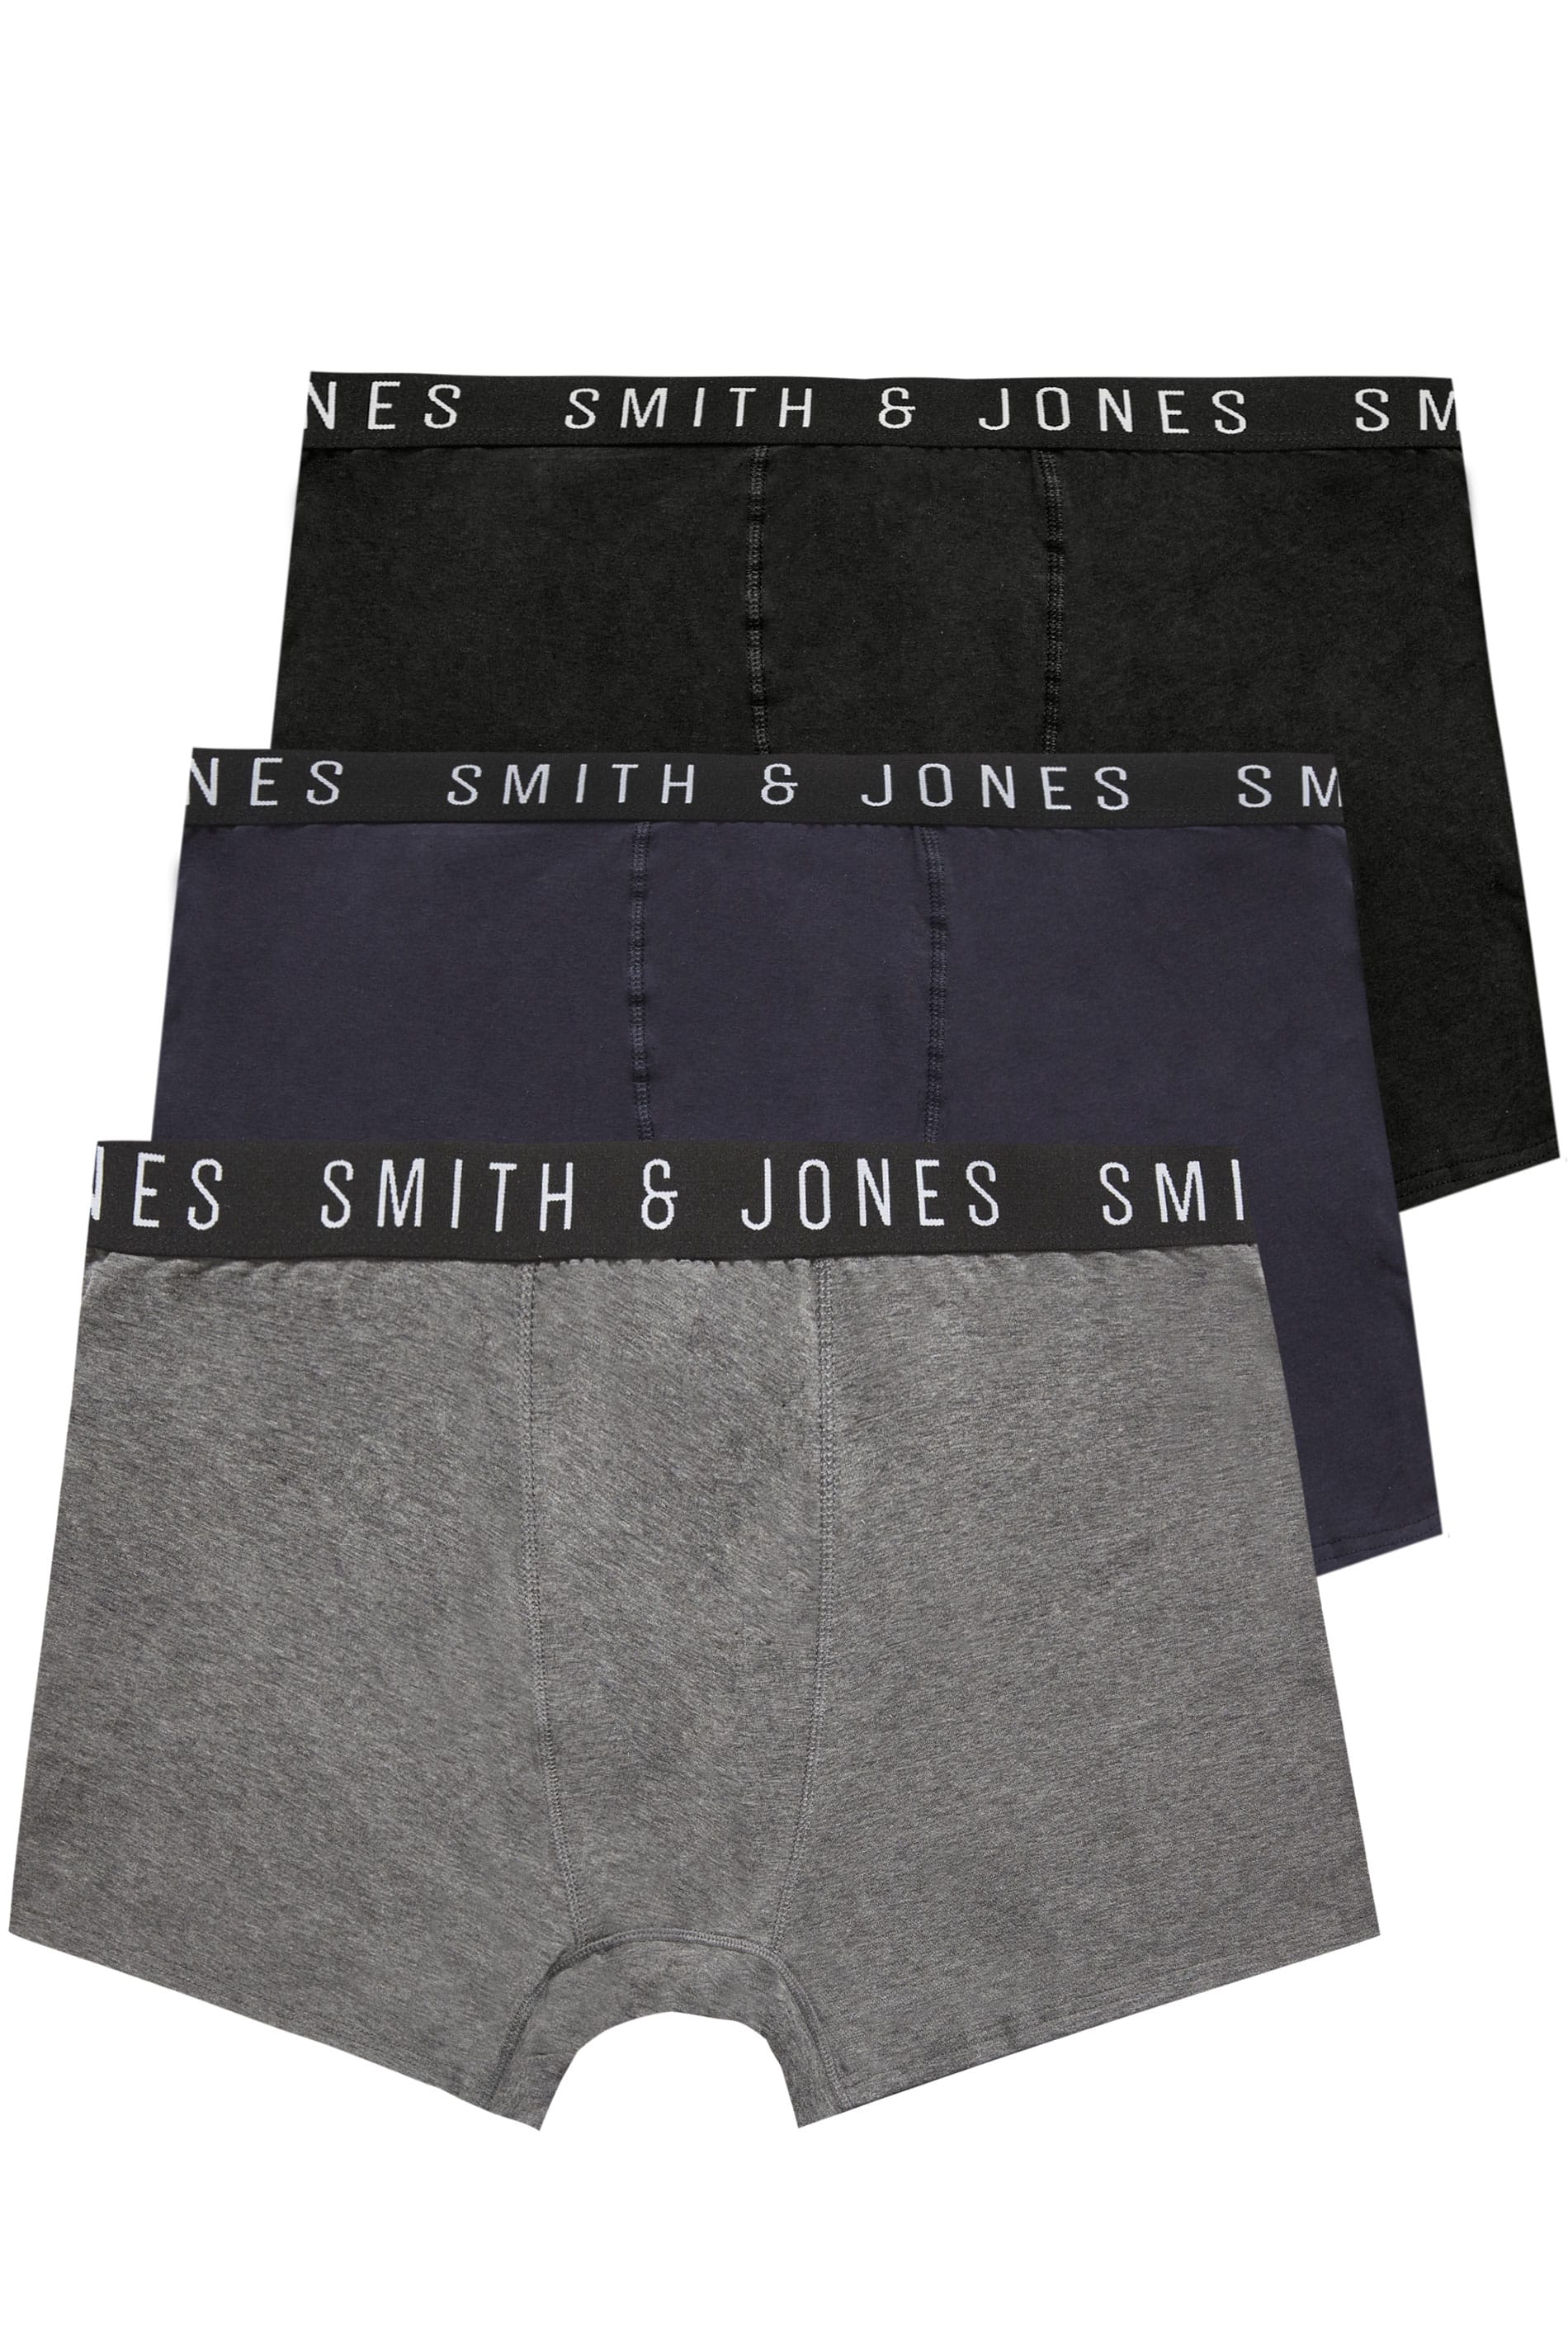 3 PACK SMITH & JONES Essential Elasticated A Front Boxers